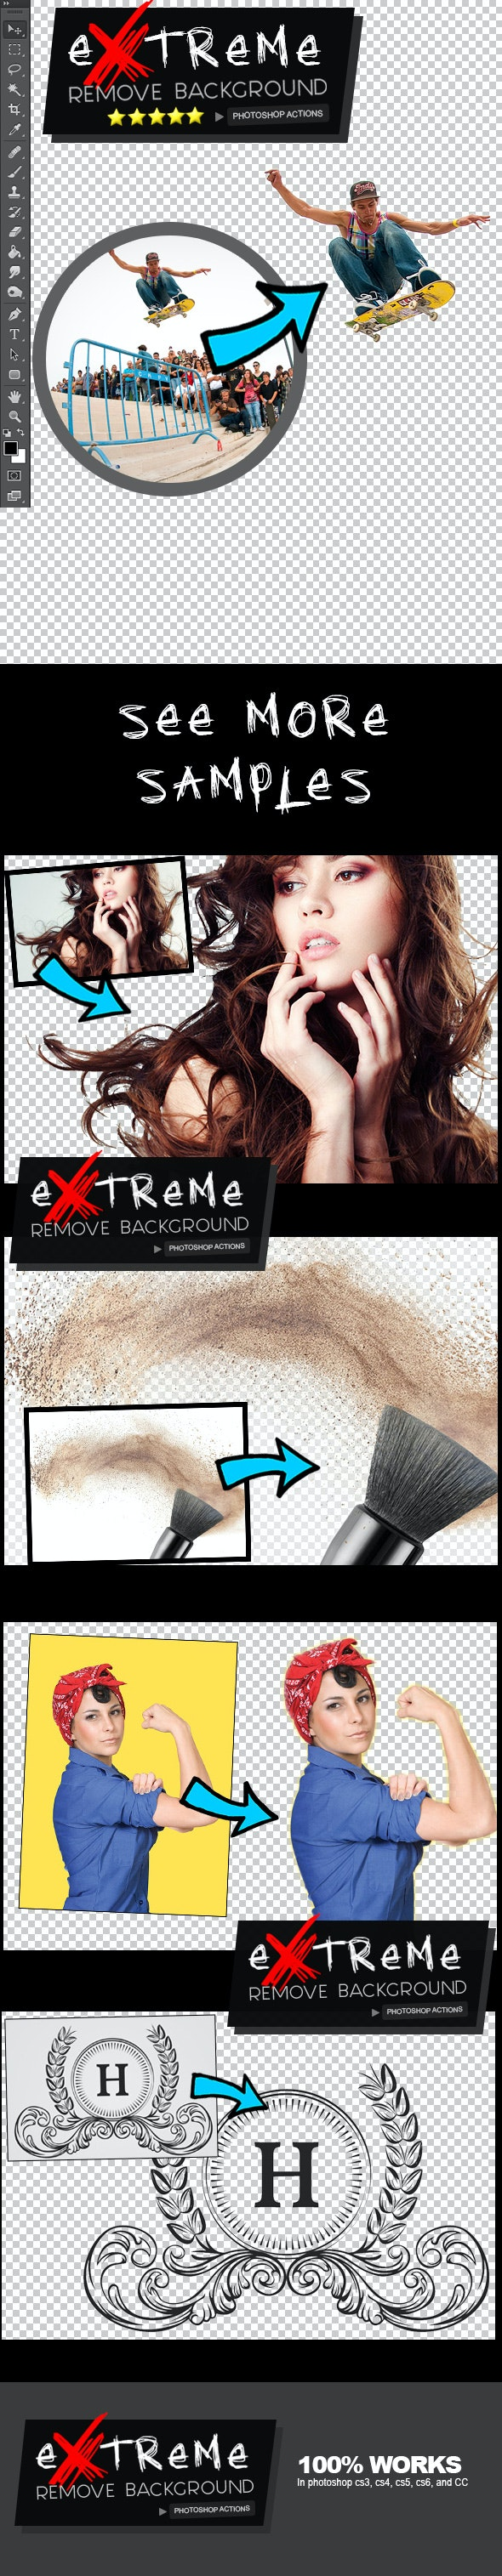 Extreme Remove Background Photoshop Actions - Photo Effects Actions